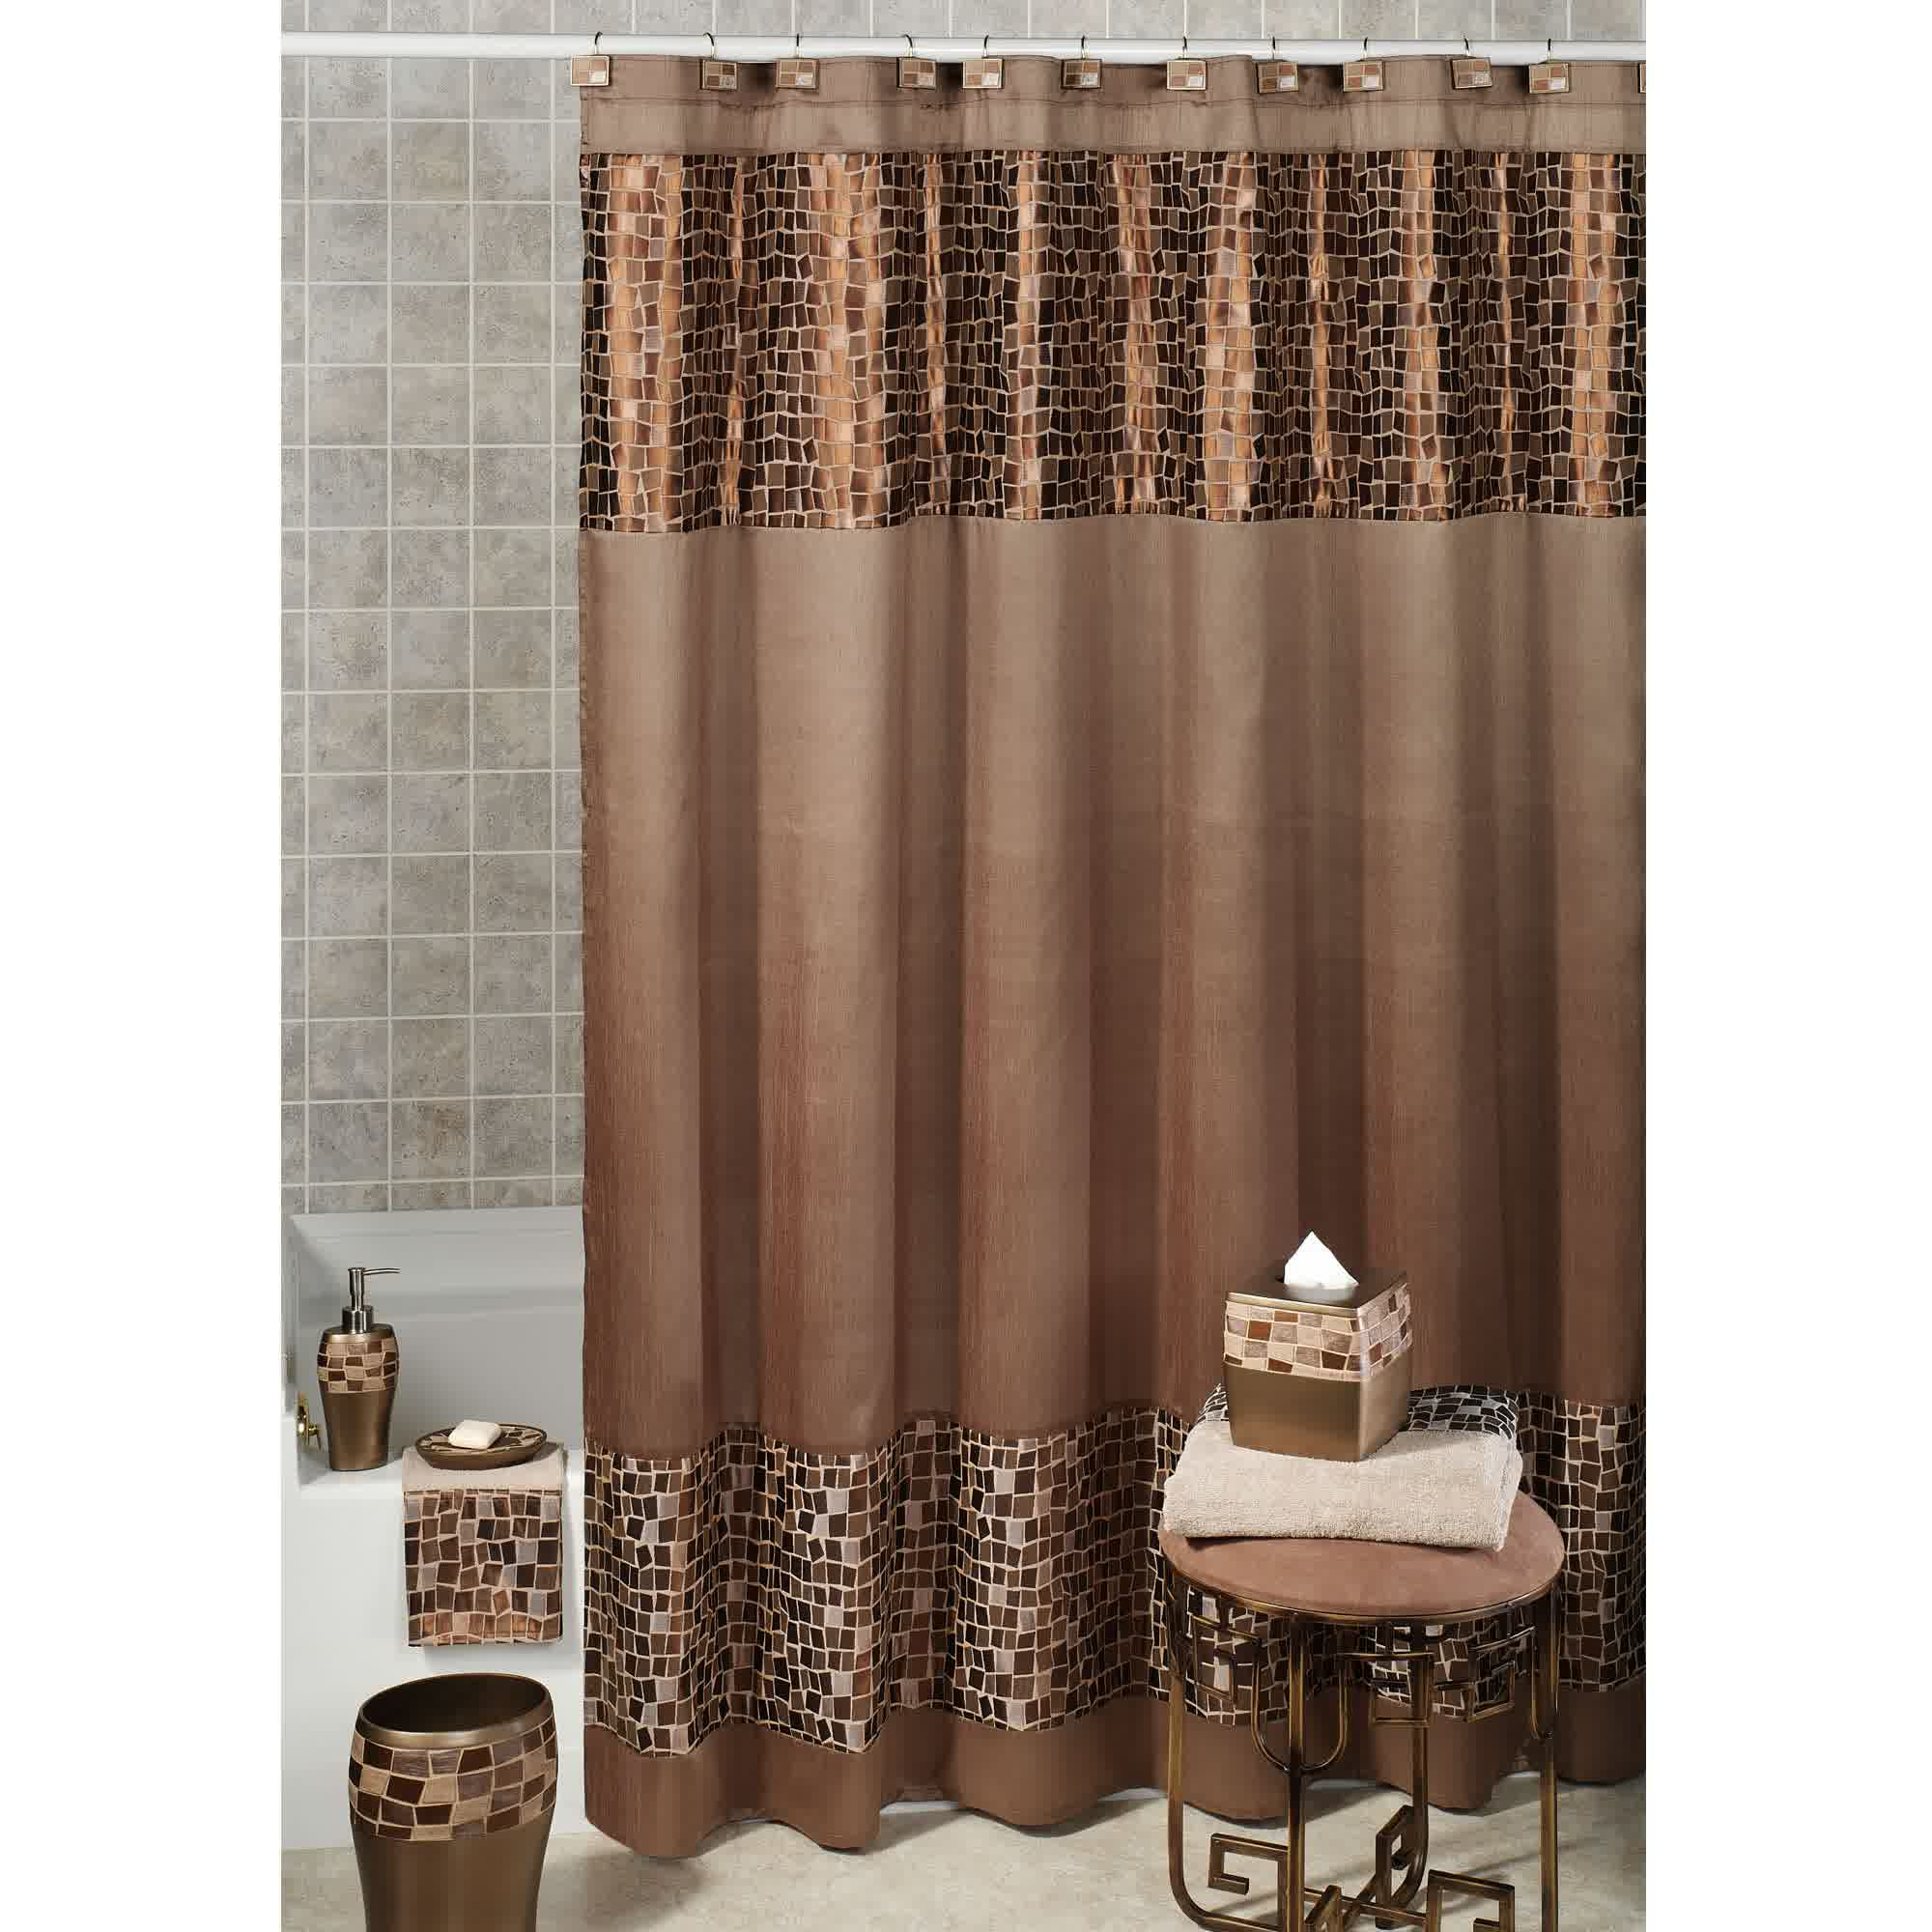 24 Inch Kitchen Curtains Blind Curtain Wonderful Kohls Drapes For Window Decor Idea